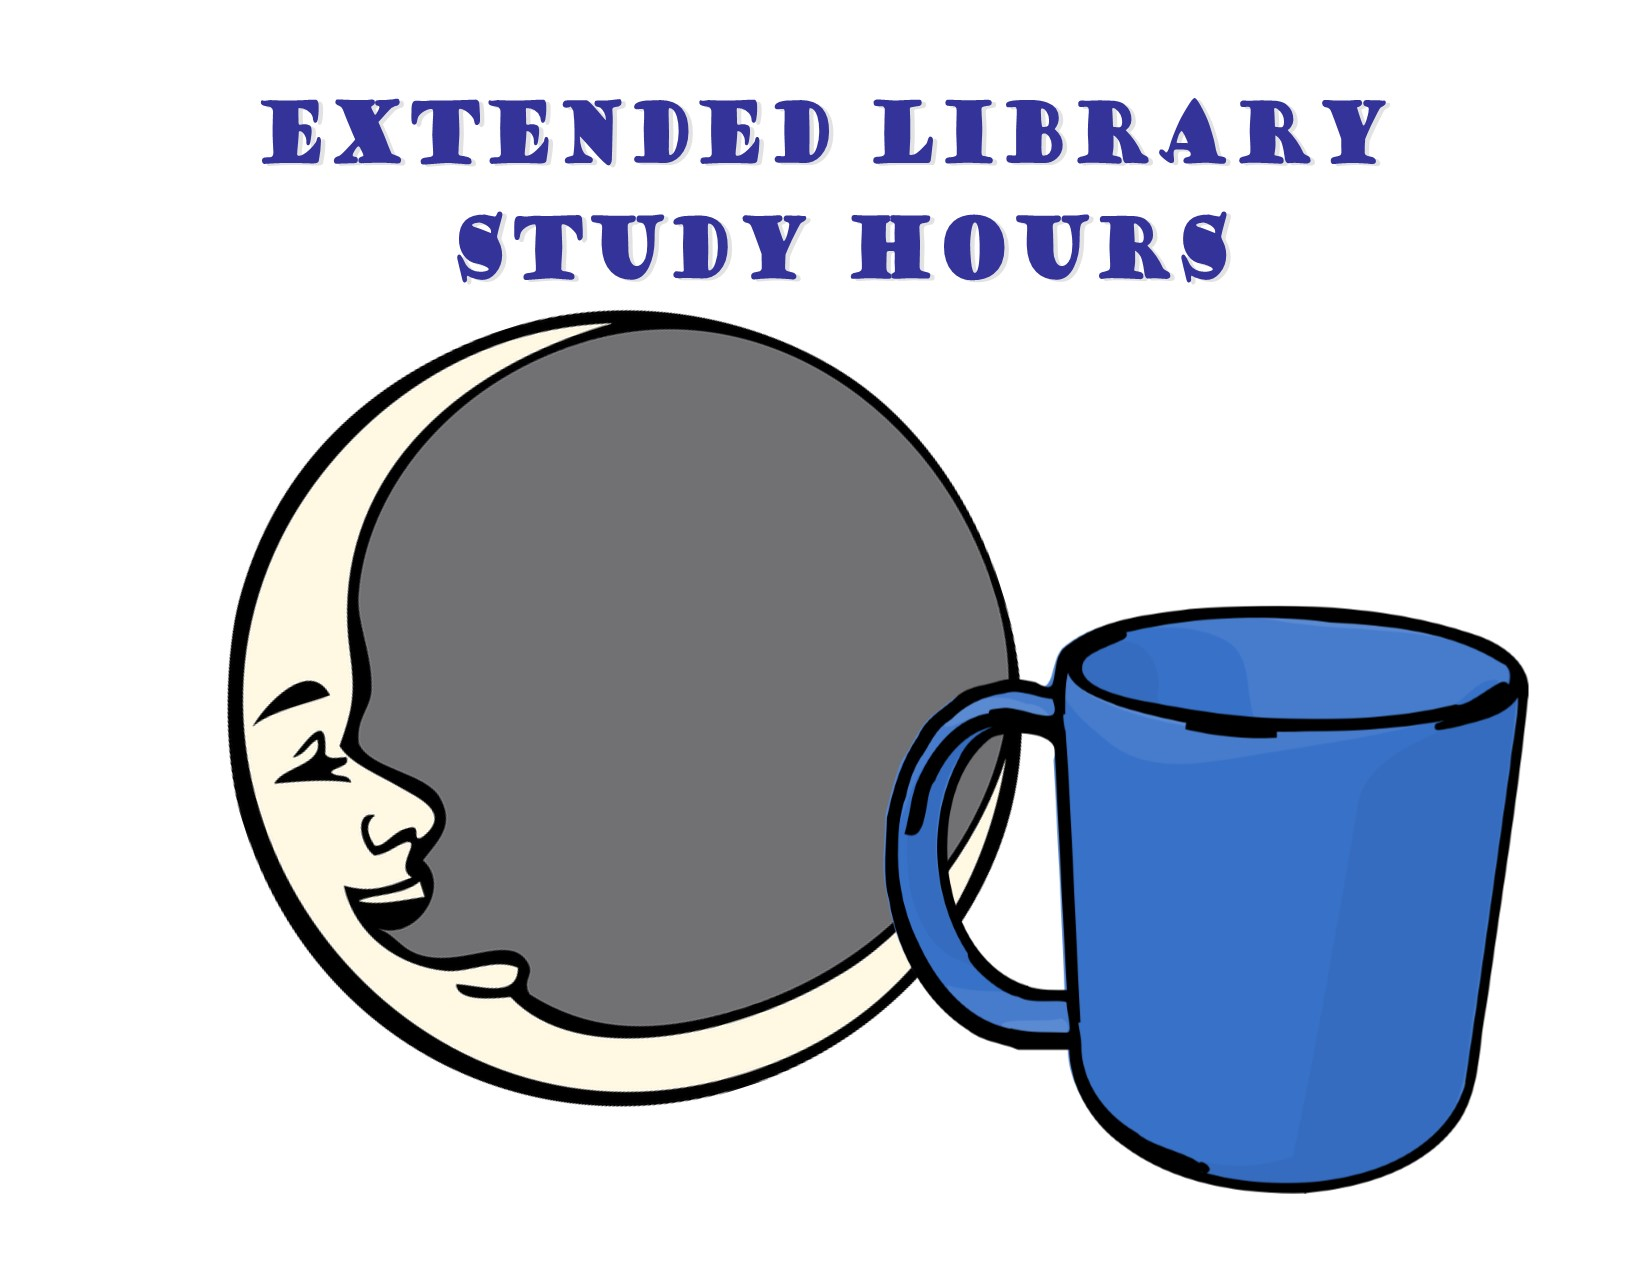 Extended Study Hours, Stress Relief Stations, and Free Coffee, Tea, and Hot Chocolate